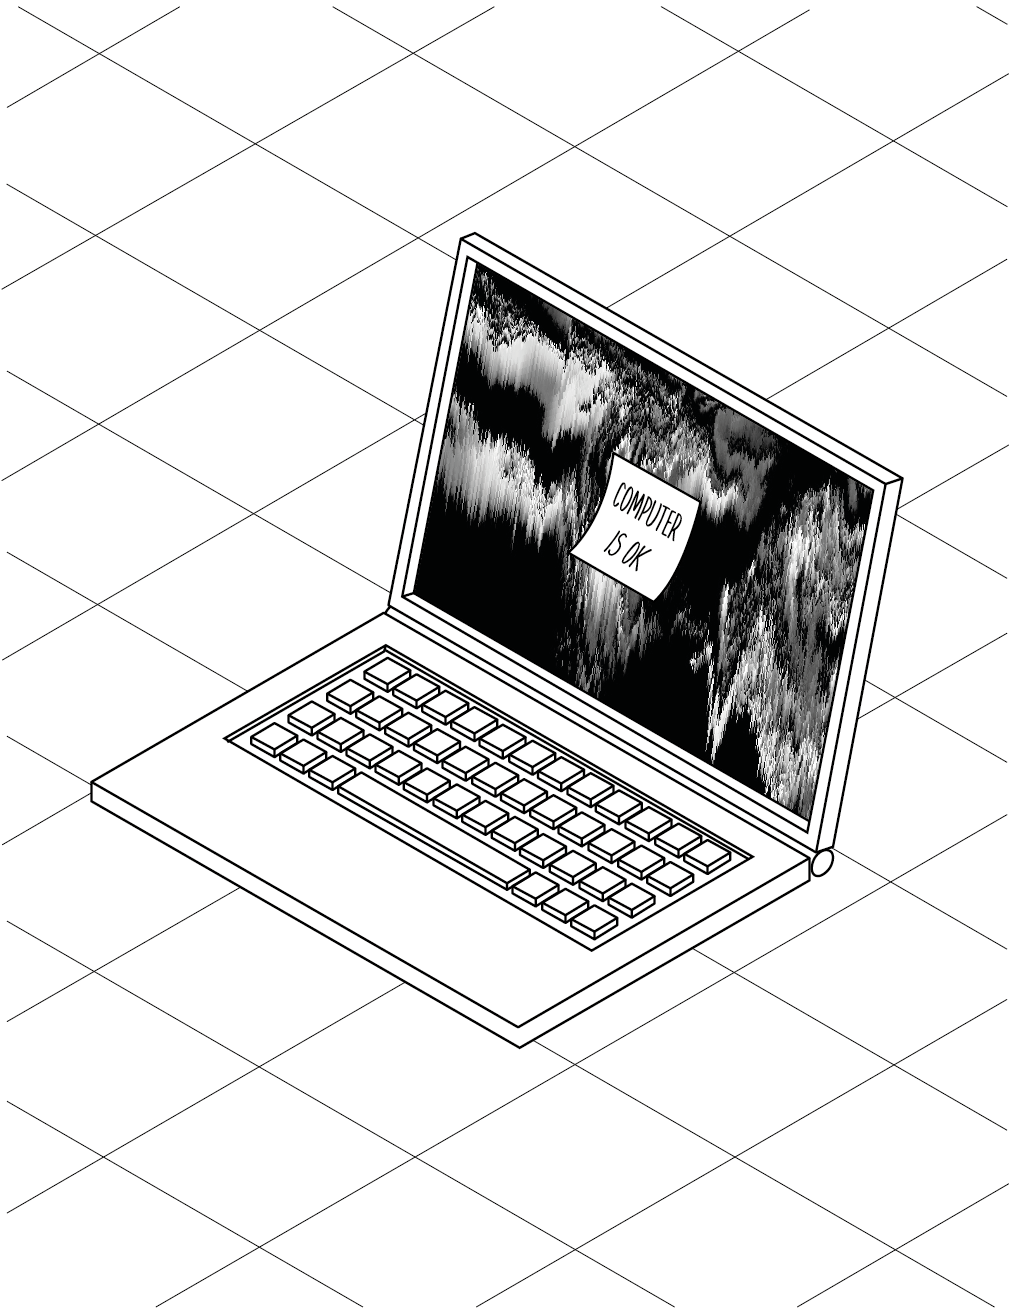 Personal project, Isometric computer with glitch